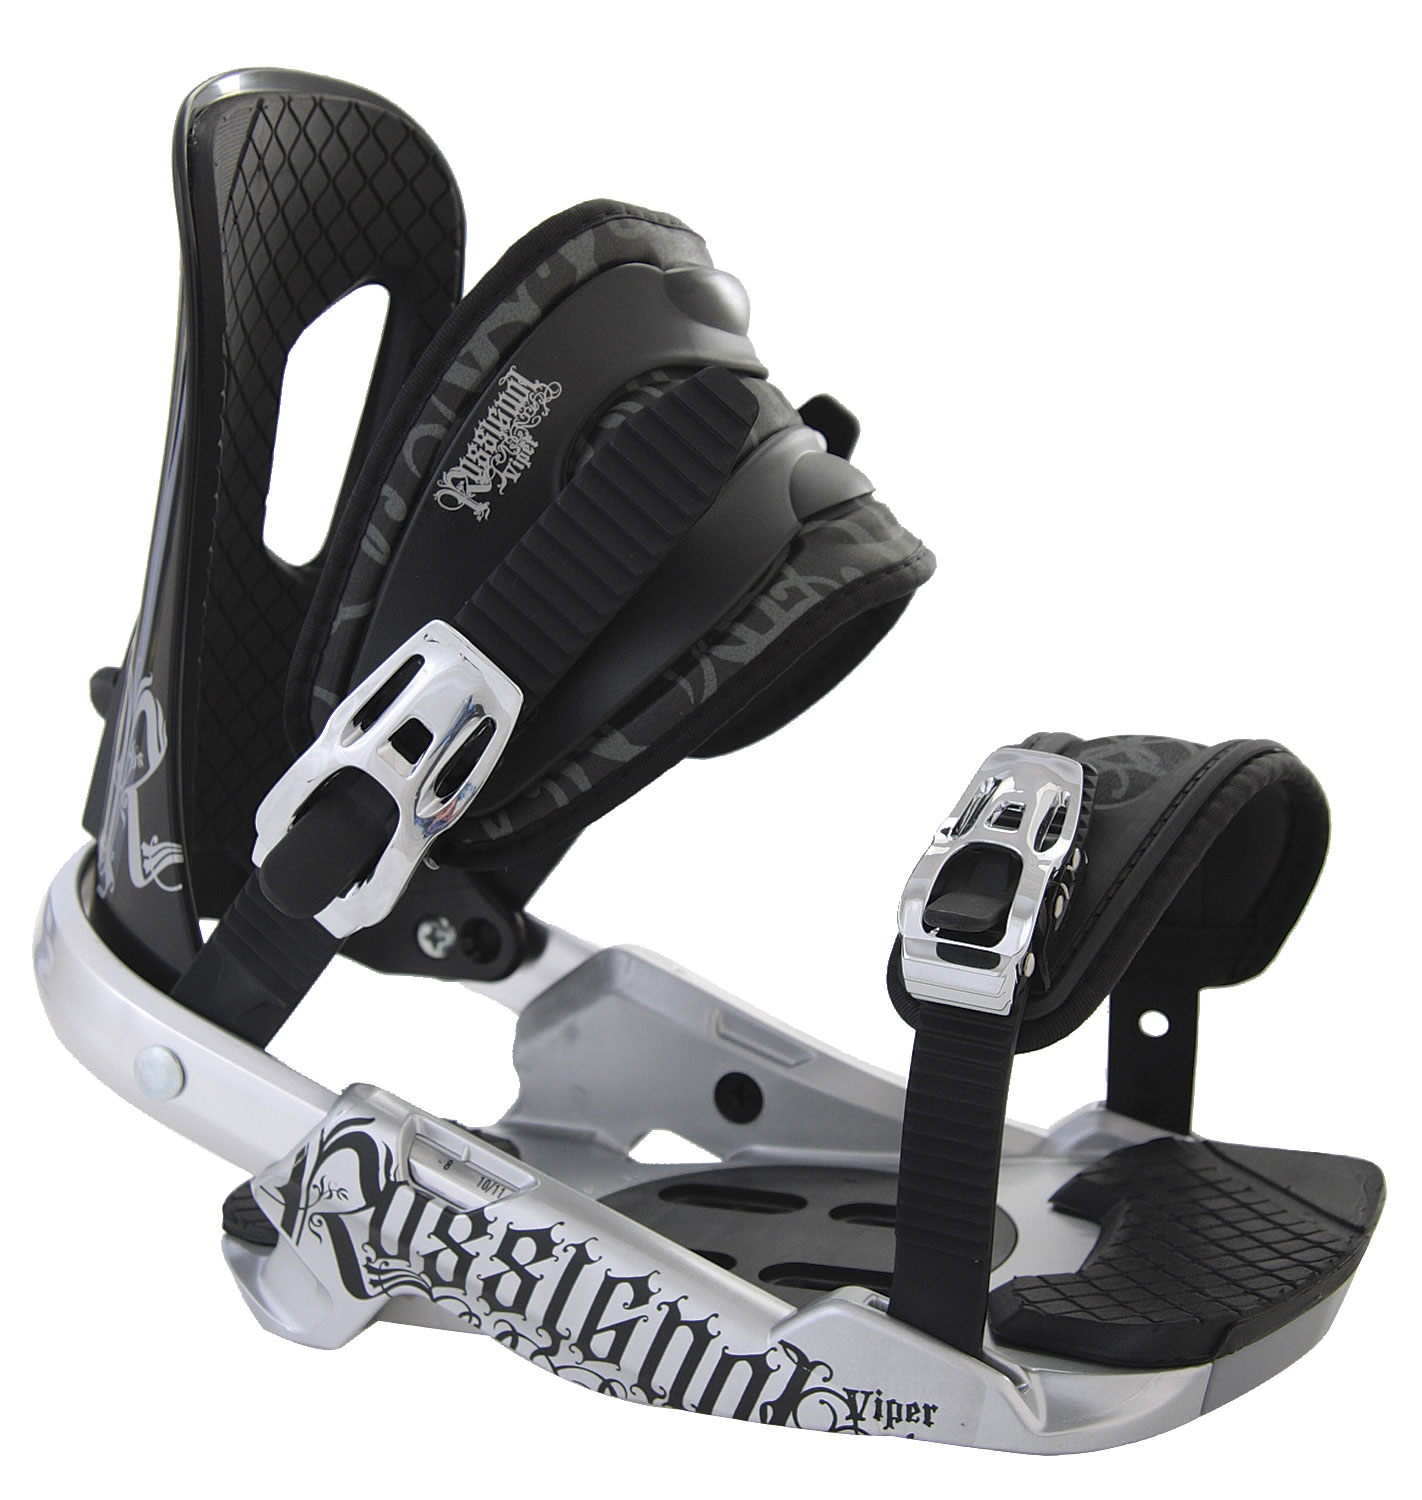 Snowboard Rossignol Viper Snowboard Bindings are a great binding for any beginner to intermediate boarder. It offers many desirable features with a great price. The performance of the binding will help you develop your skills as a snowboarder that will take you to the next level. The bindings are made of quality and durable materials that will provide you with the responsiveness that you need. You will feel the comfort and performance of these bindings after riding all day on the mountain. These bindings are perfect for all-mountain terrain.Key Features of The Rossignol Viper Snowboard Bindings: Base Plate - HC-X Hi-Back - I-Back Light Straps - 3D EVA Extra - Puffy Pads - $77.95